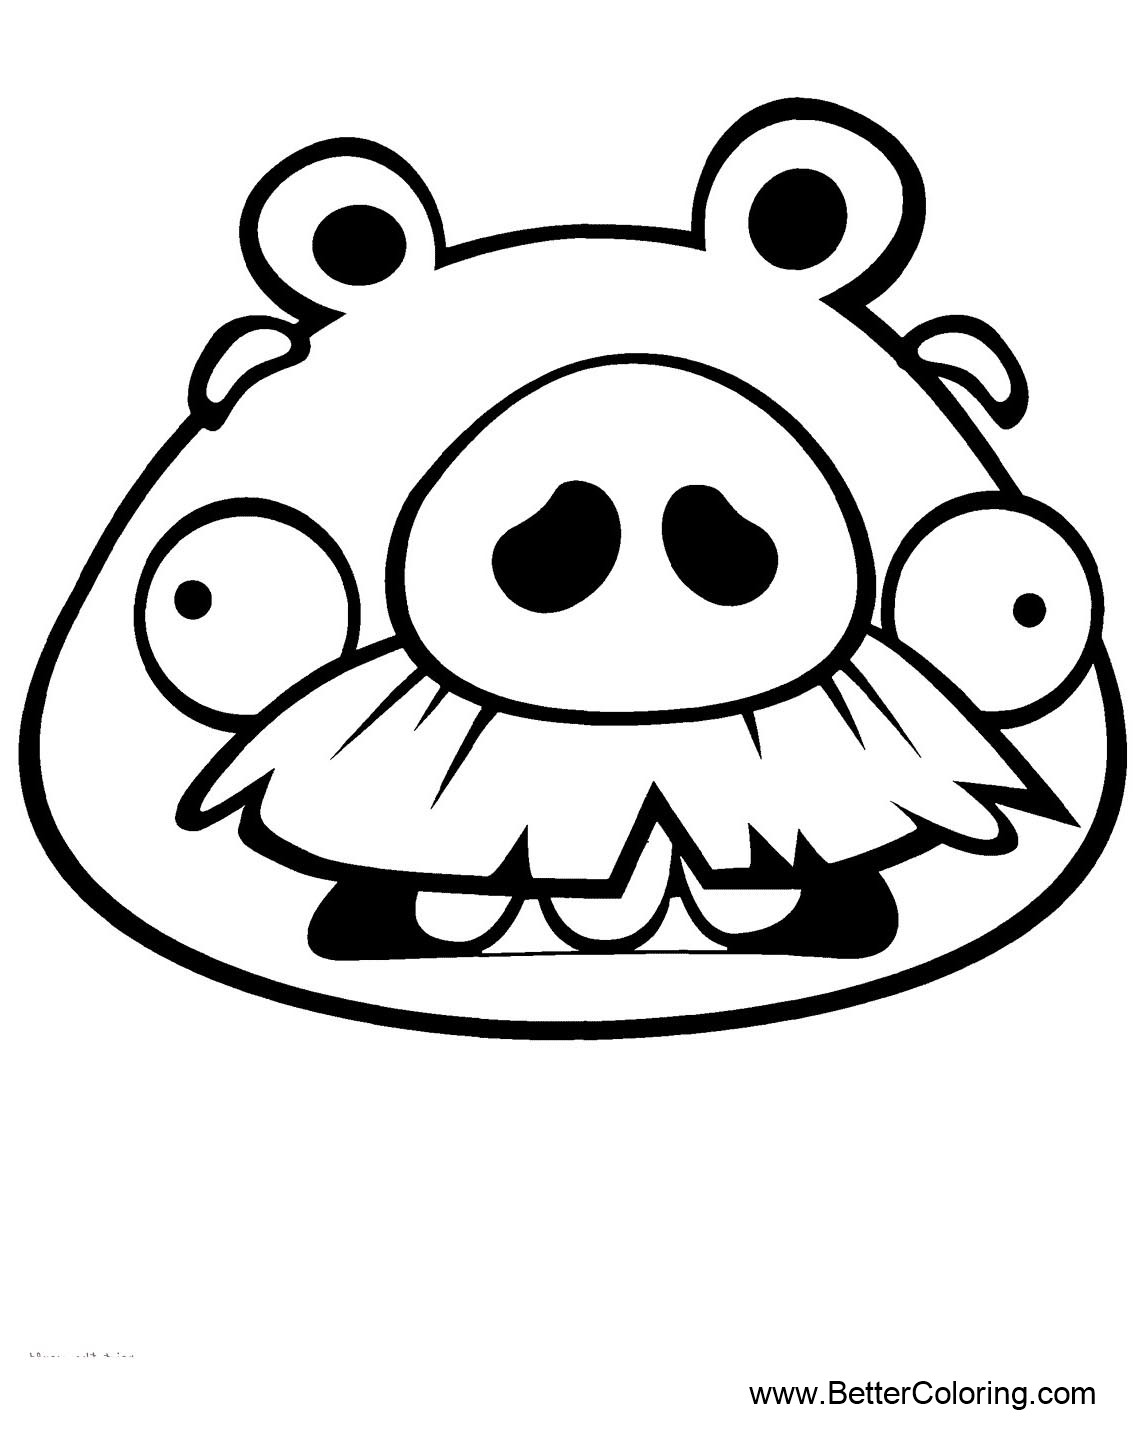 Free Angry Birds Coloring Pages Old Pig printable